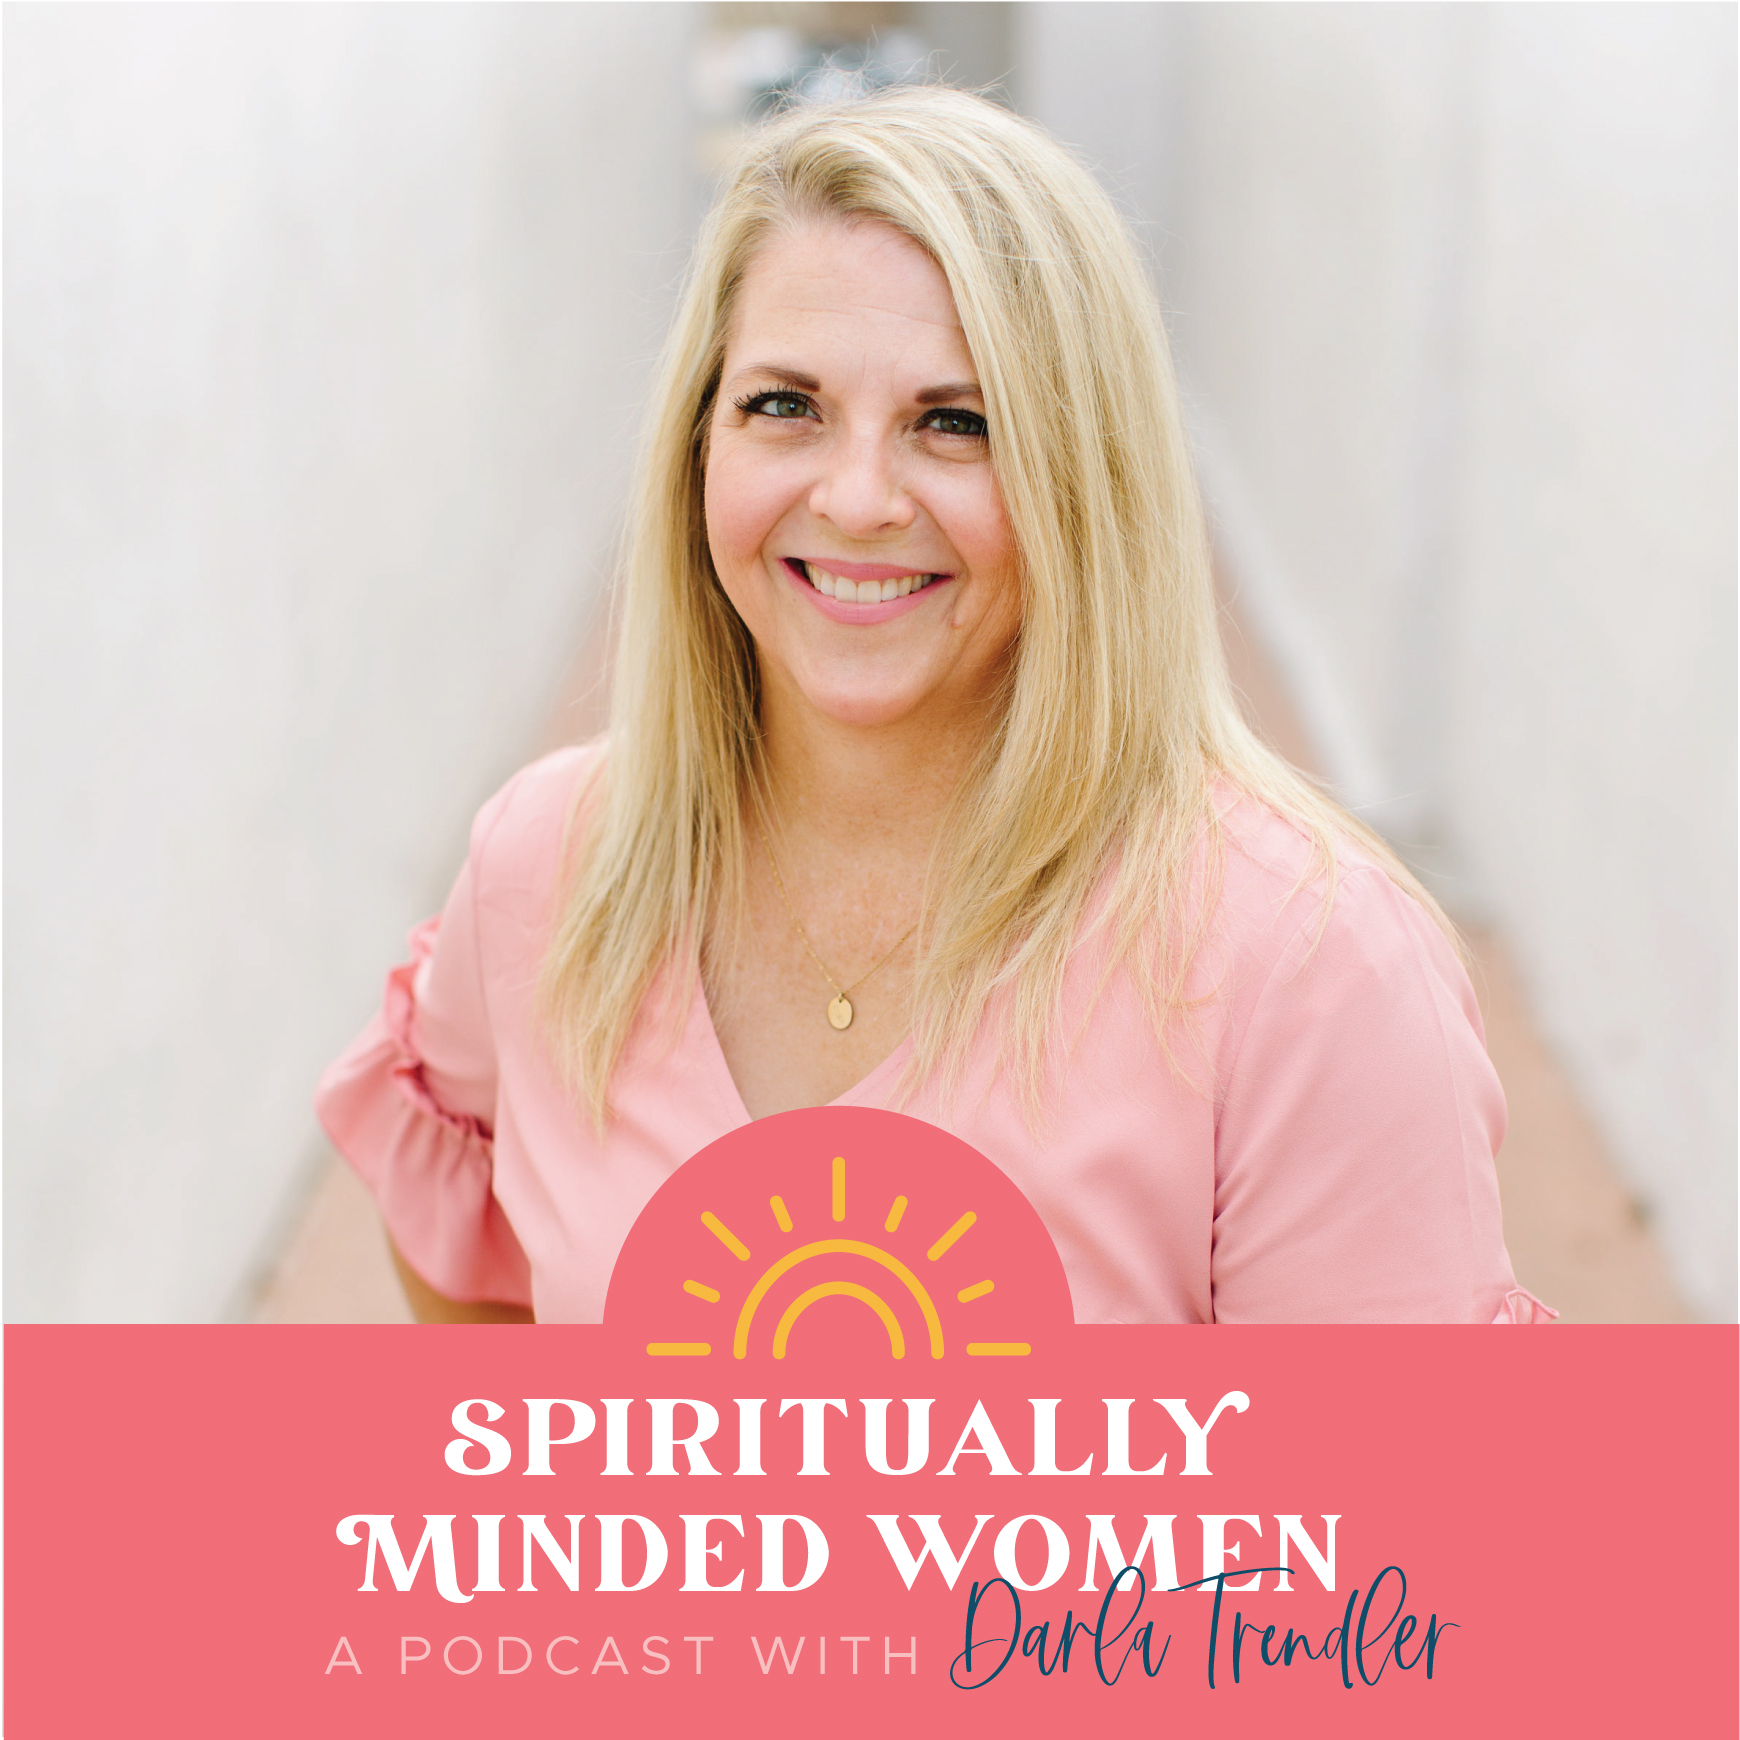 Join me on Spiritually Minded Women